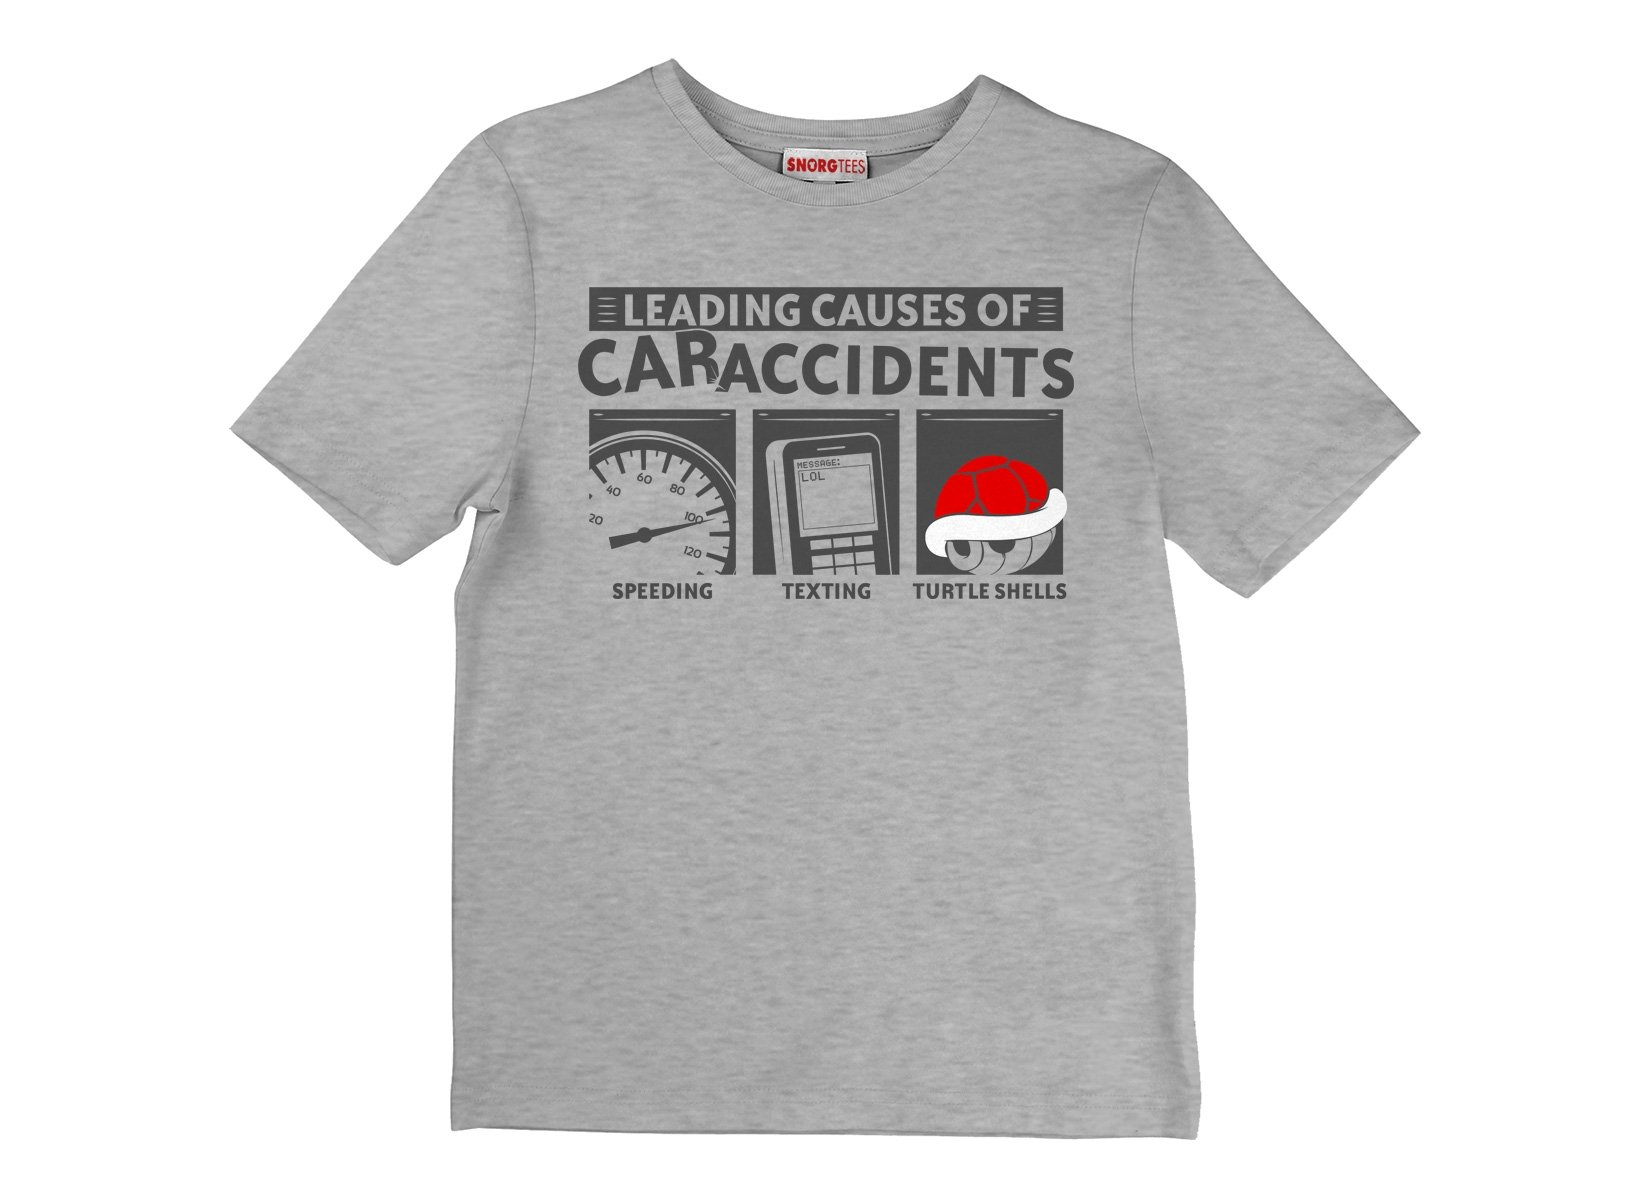 Leading Causes of Accidents on Kids T-Shirt